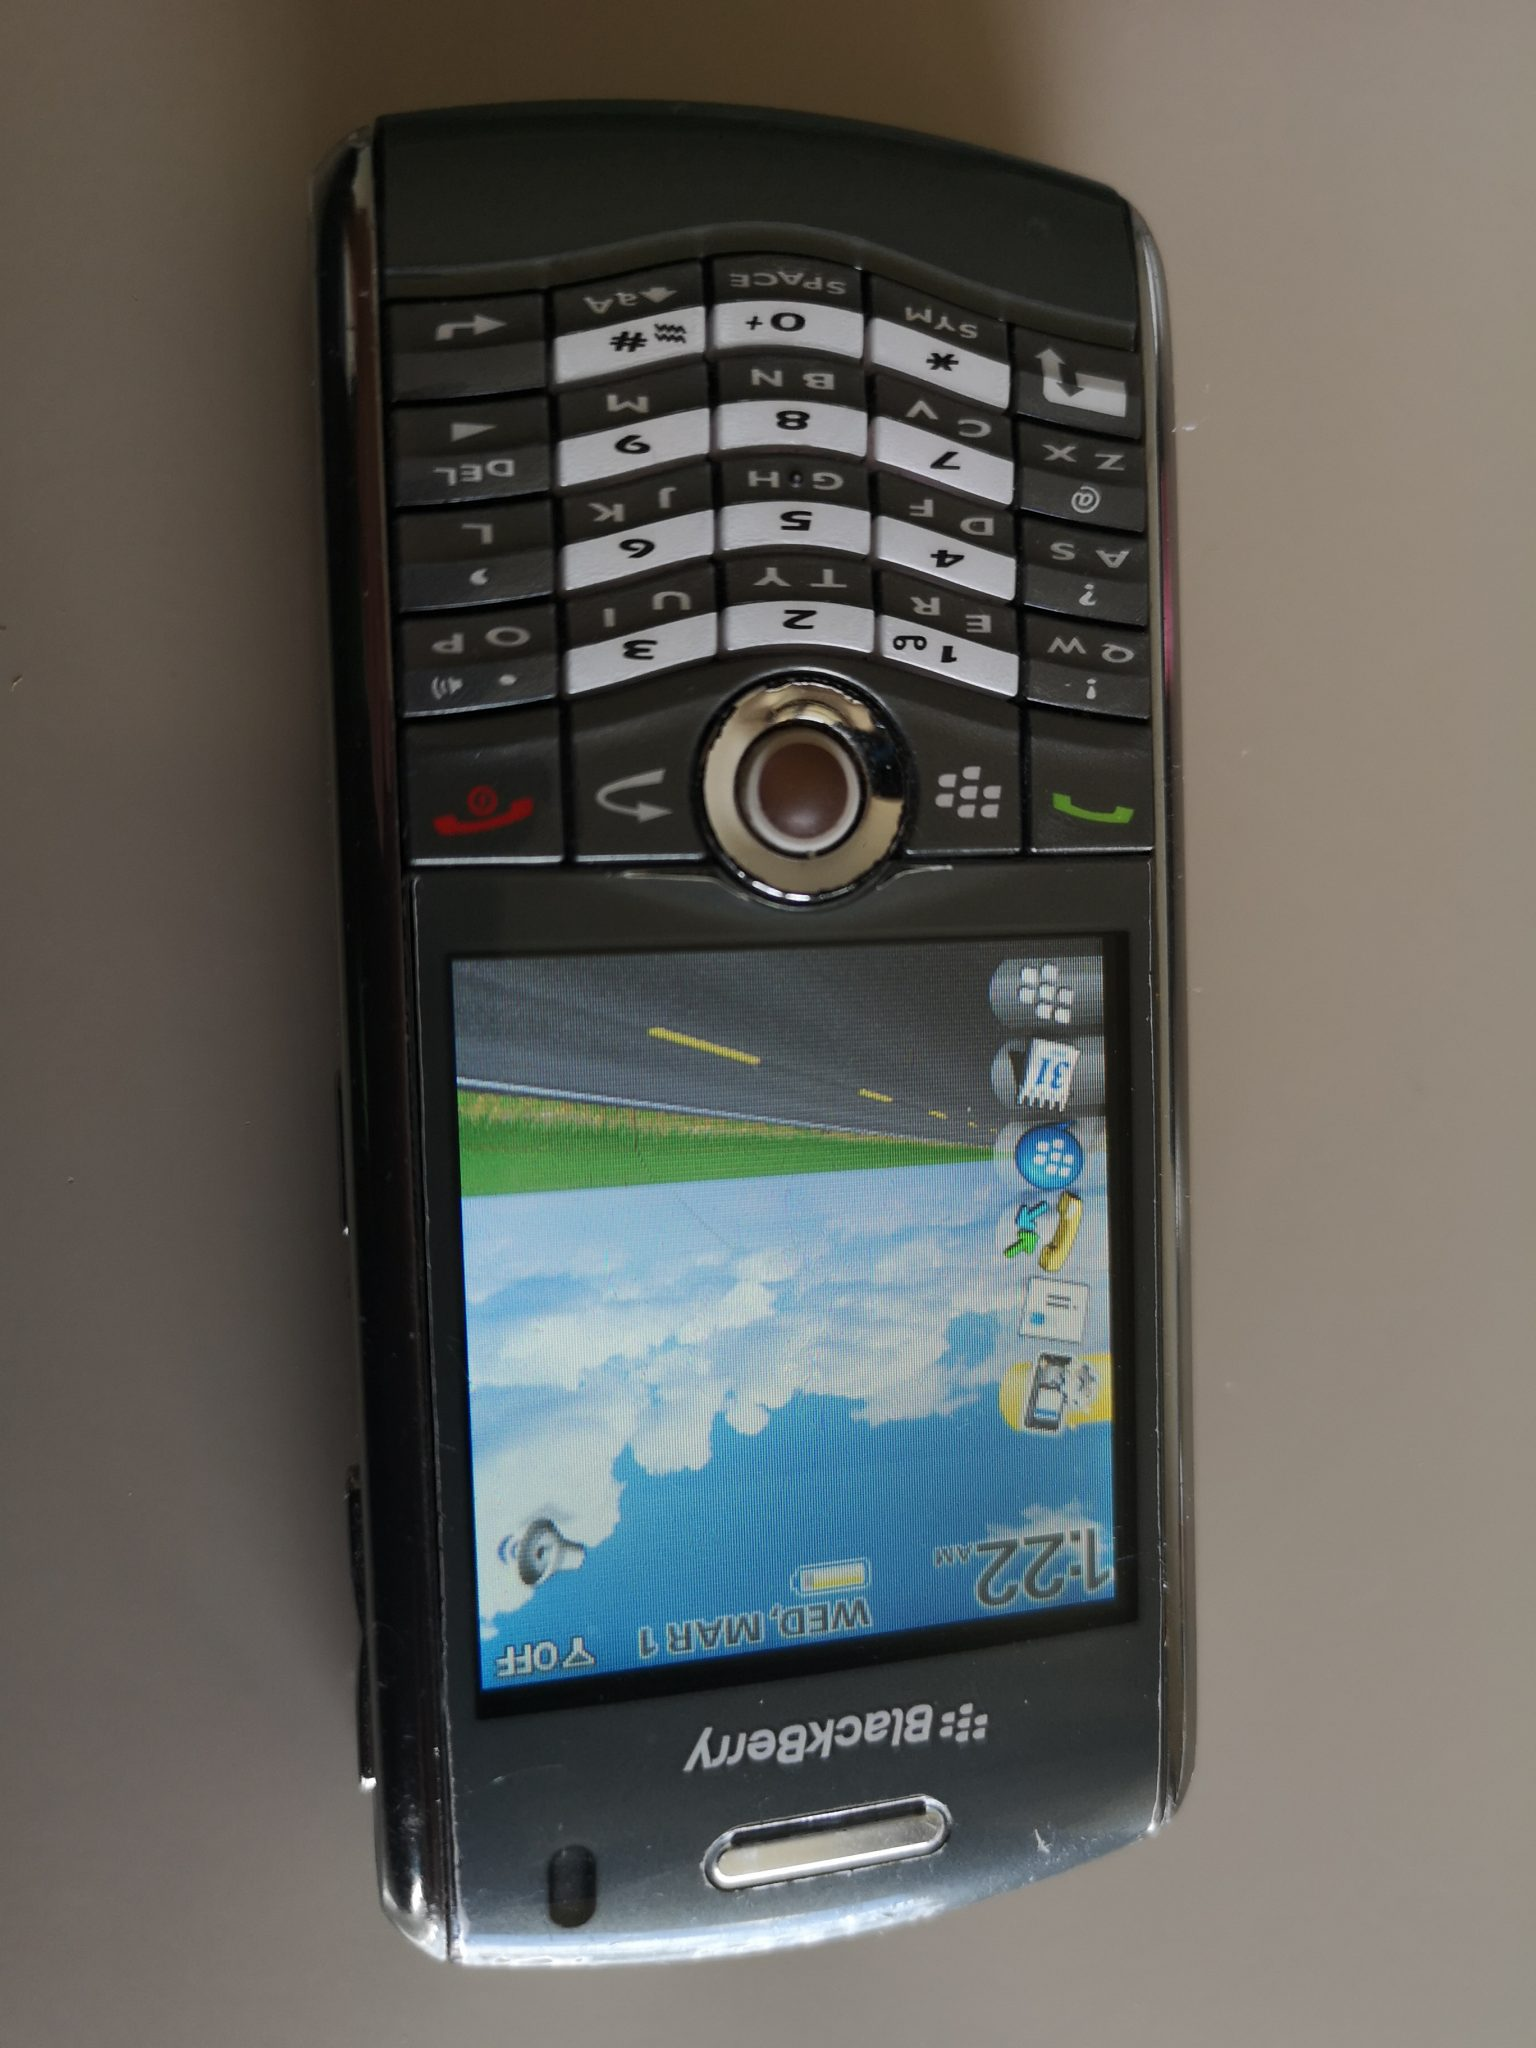 Blackberry Pearl 8120 Review - Modified Keyboard, Same Rollerball